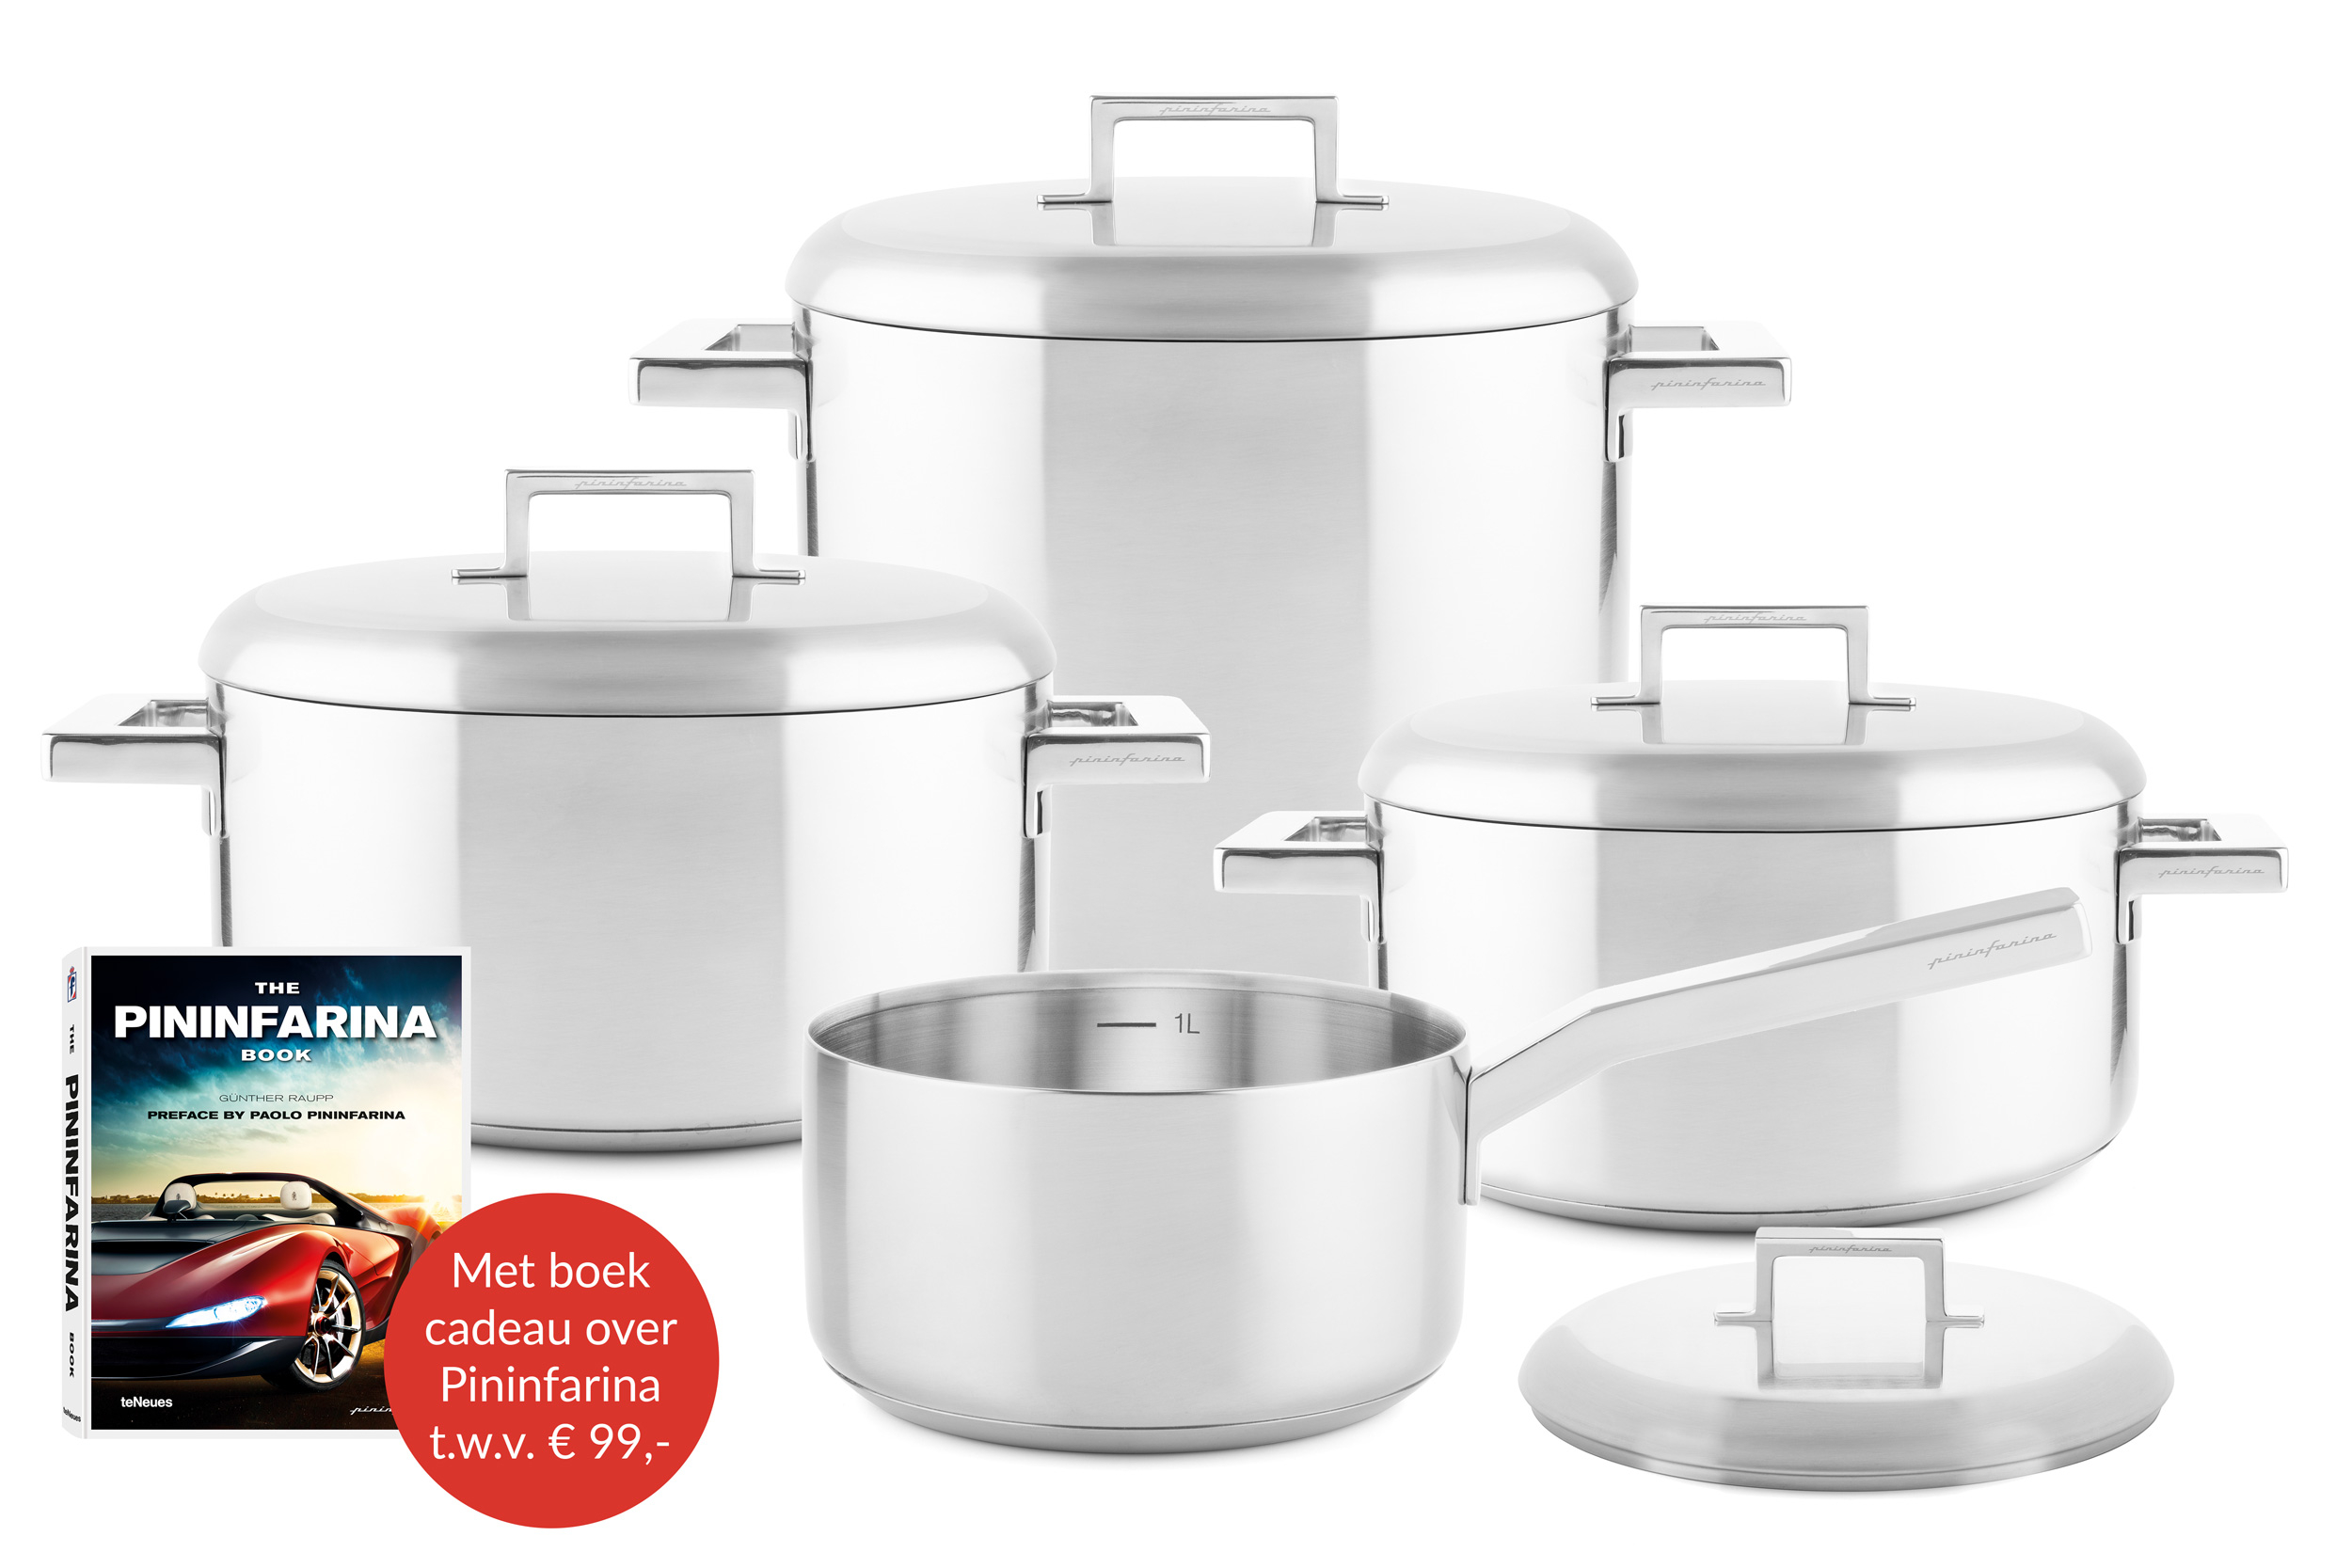 Stile cookware set 8 pcs with Pininfarina book